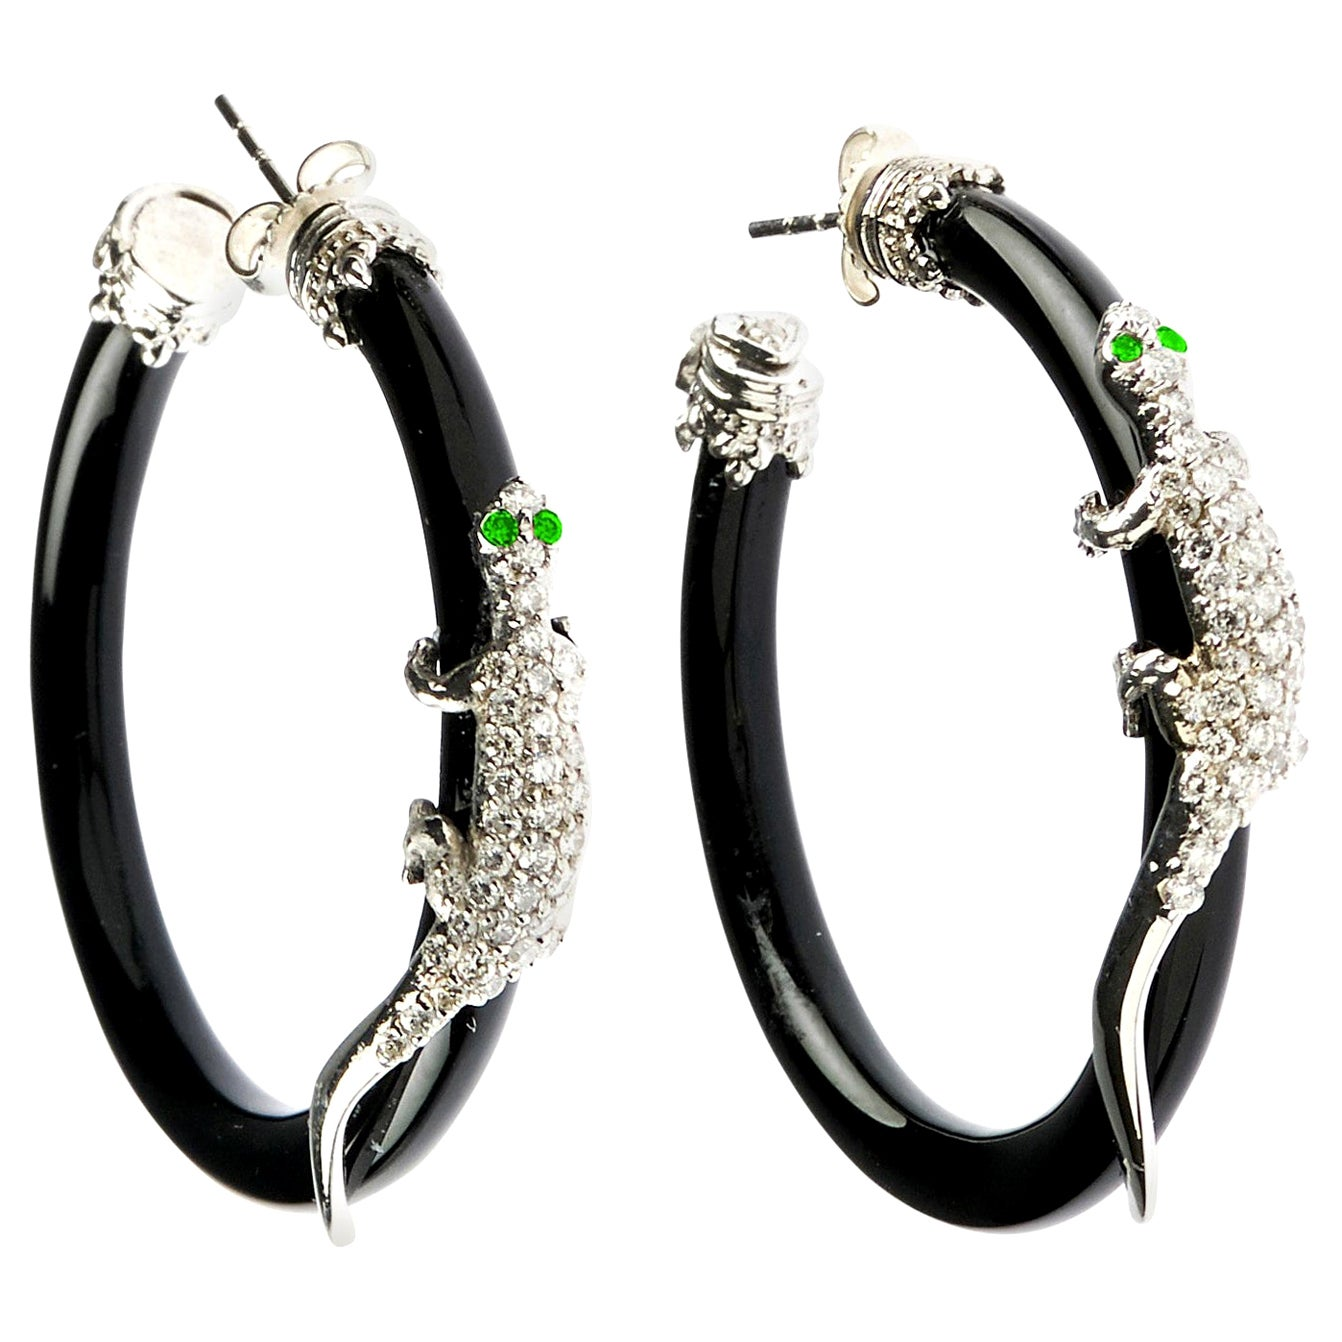 Stambolian 18 Karat White Gold Diamond Black Onyx Tsavorite Lizard Hoop Earrings